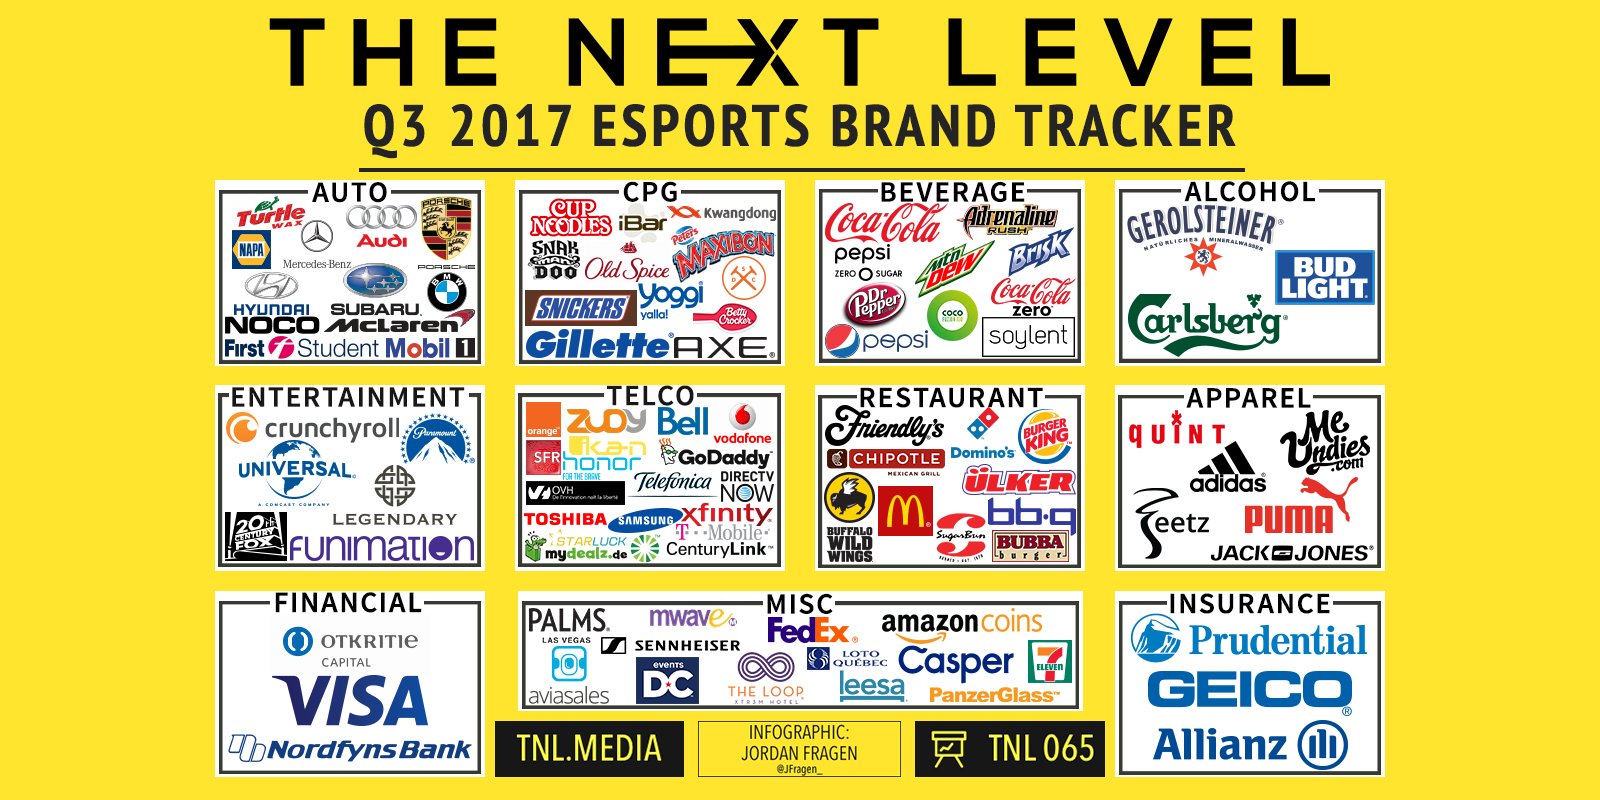 Supplied by The Next Level -Non-endemic Brands from 2017